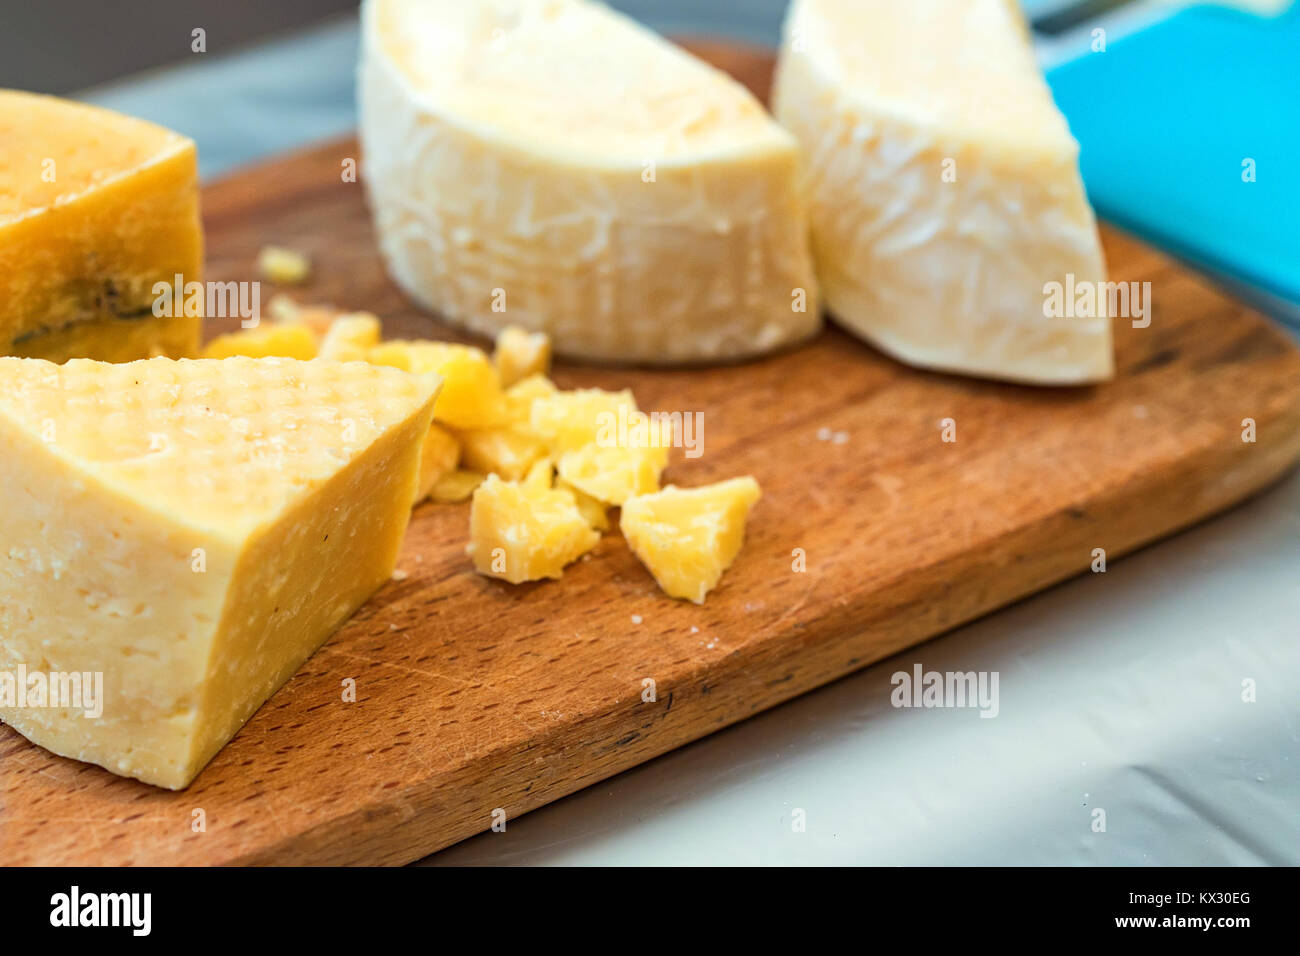 Close-up of homemade cheese at country fair - Stock Image